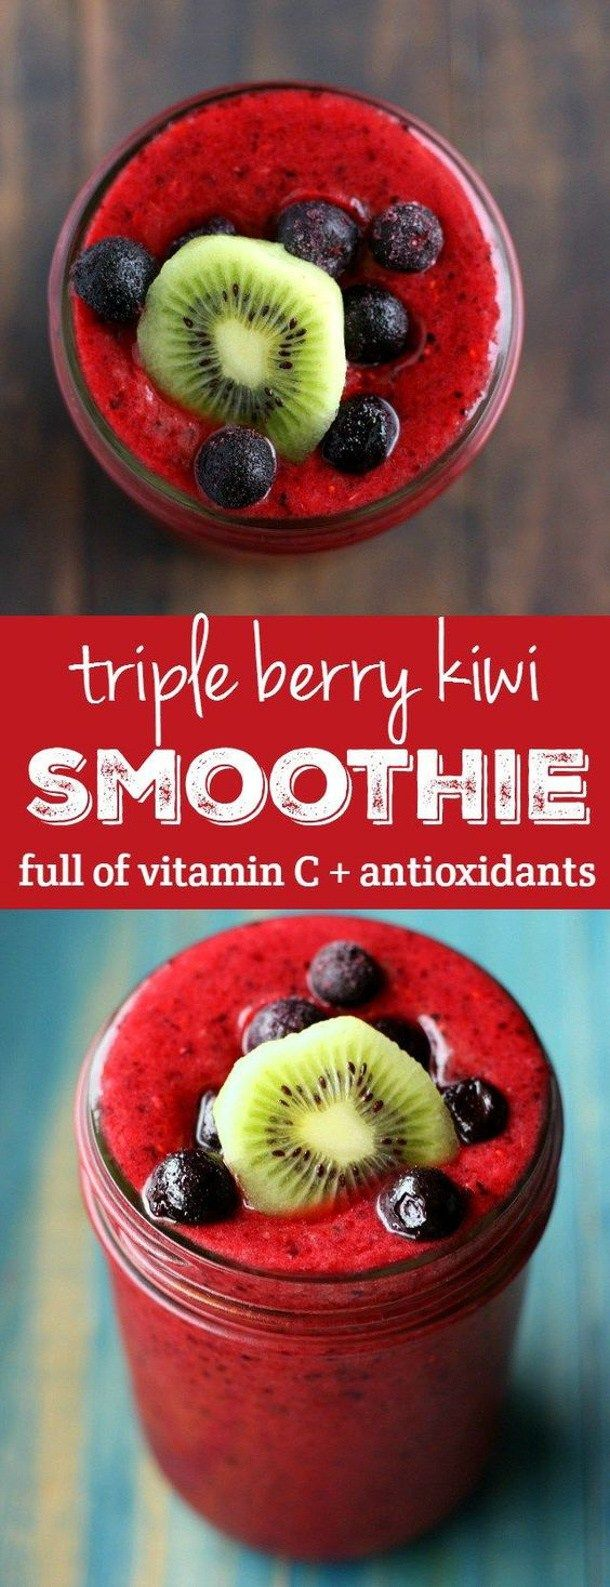 Healthy Snacks - Immunity Boosting Triple Berry Kiwi Smoothie Recipe via The Pretty Bee Read more in http://natureandhealth.net/